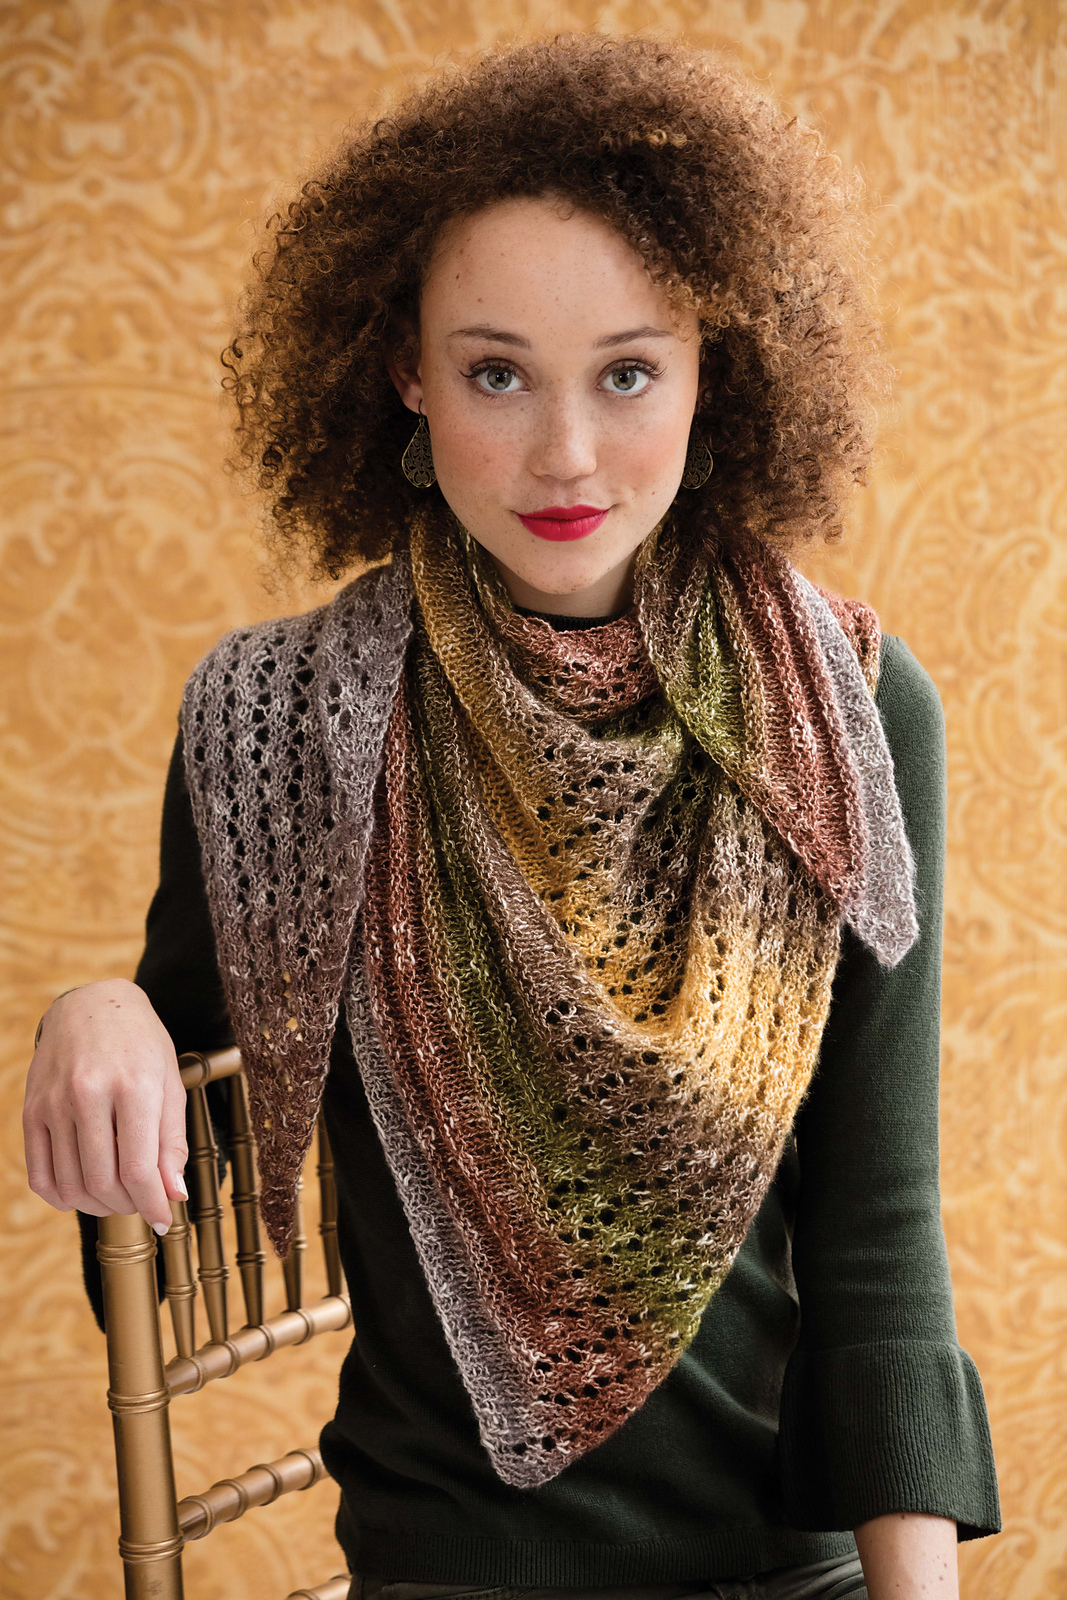 Right Triangle Shawl knitting pattern by Holli Yeoh | Knit Simple magazine, Fall 2016